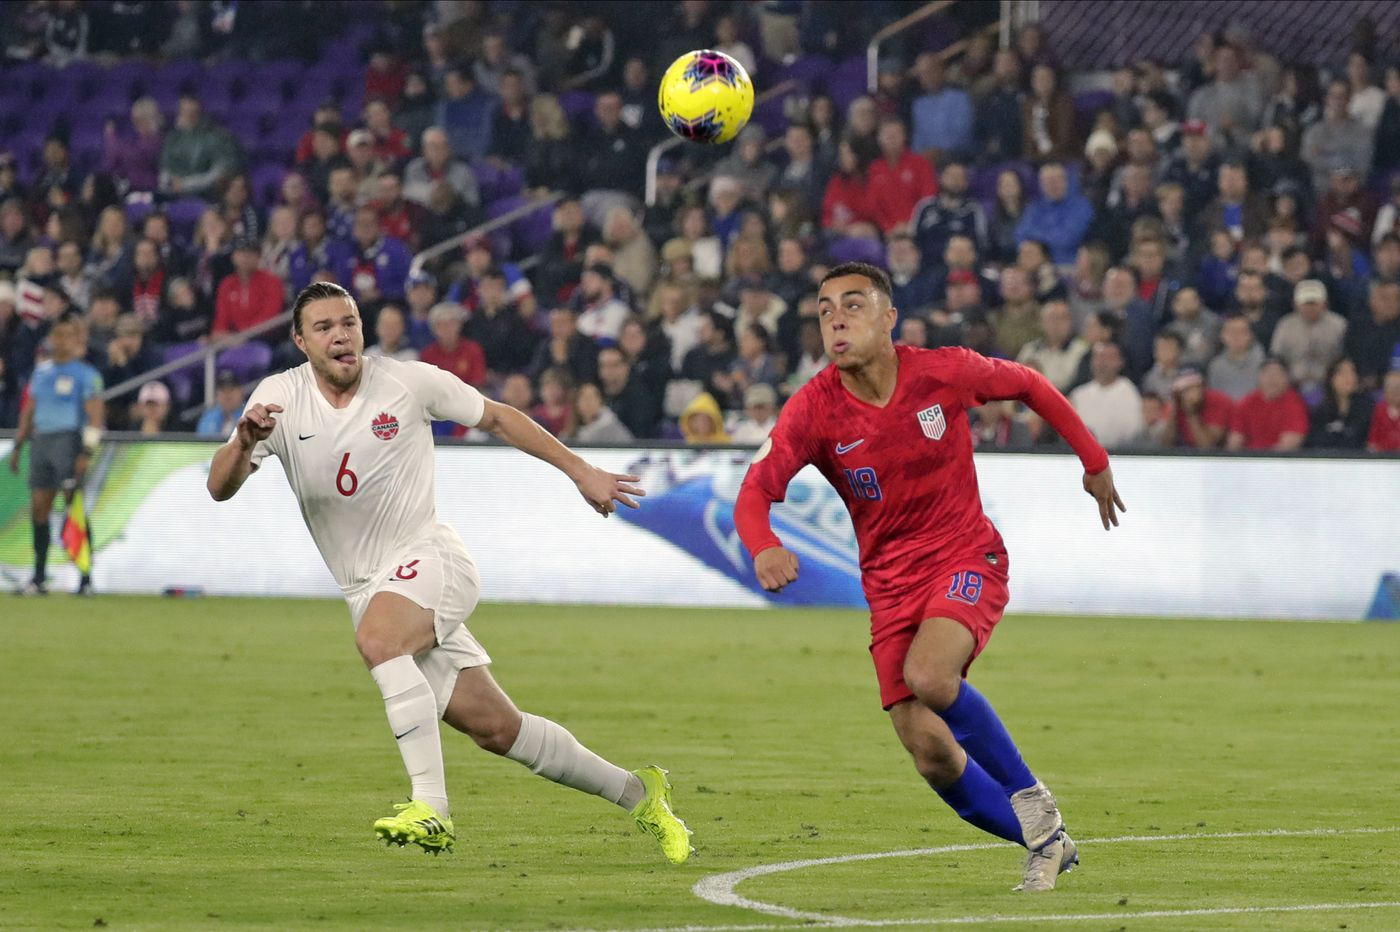 USMNT beats Canada 4-1 in Nations League, led by Sergiño Dest and Gyasi Zardes